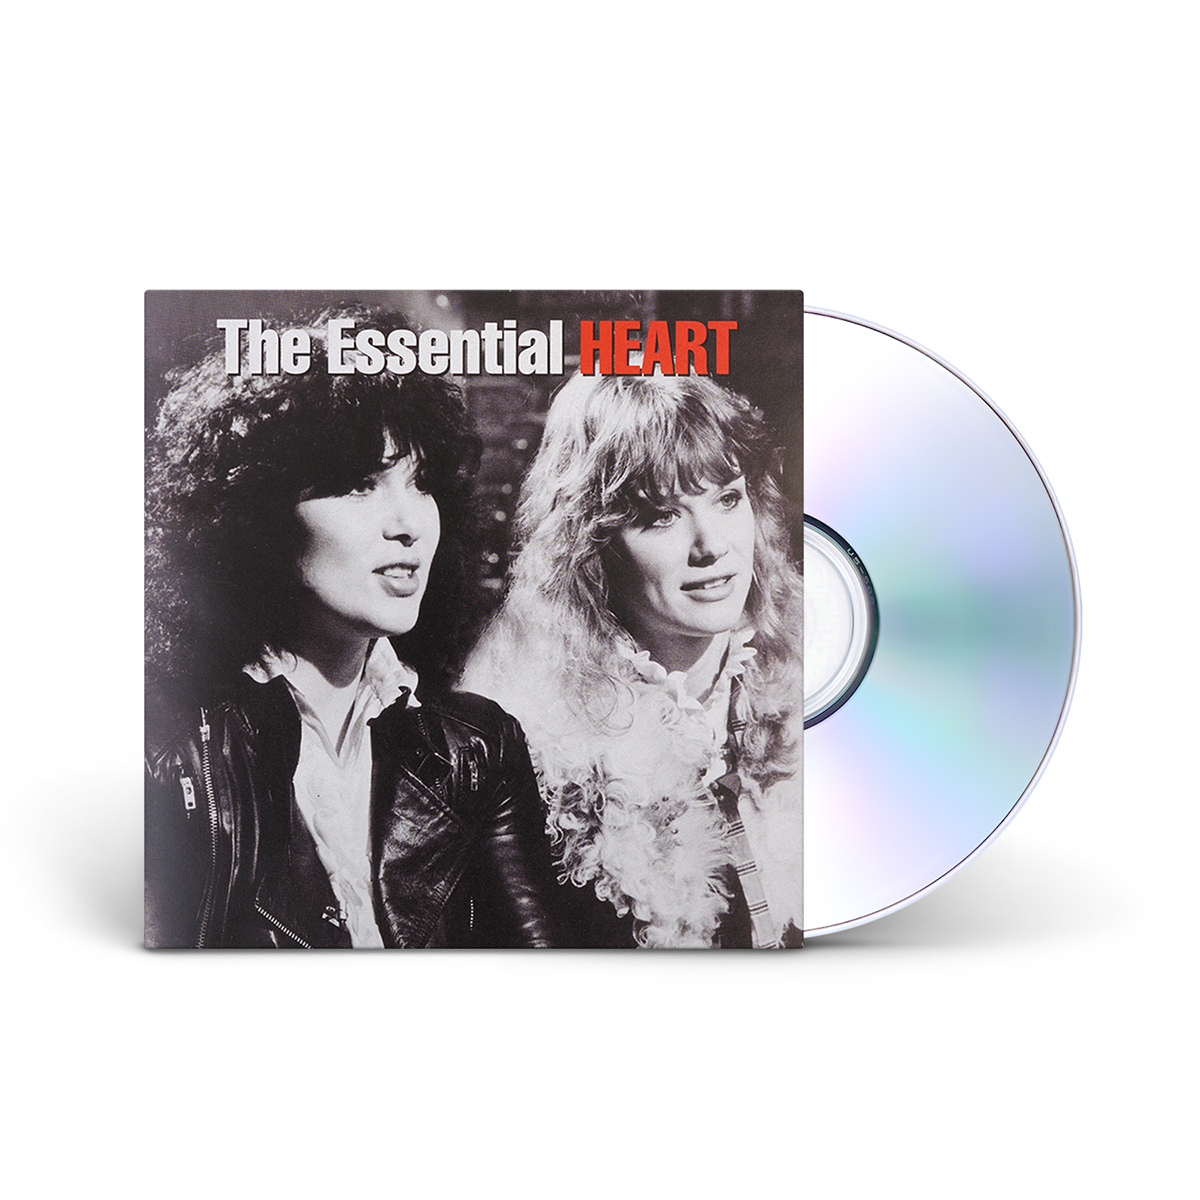 The Essential Heart CD